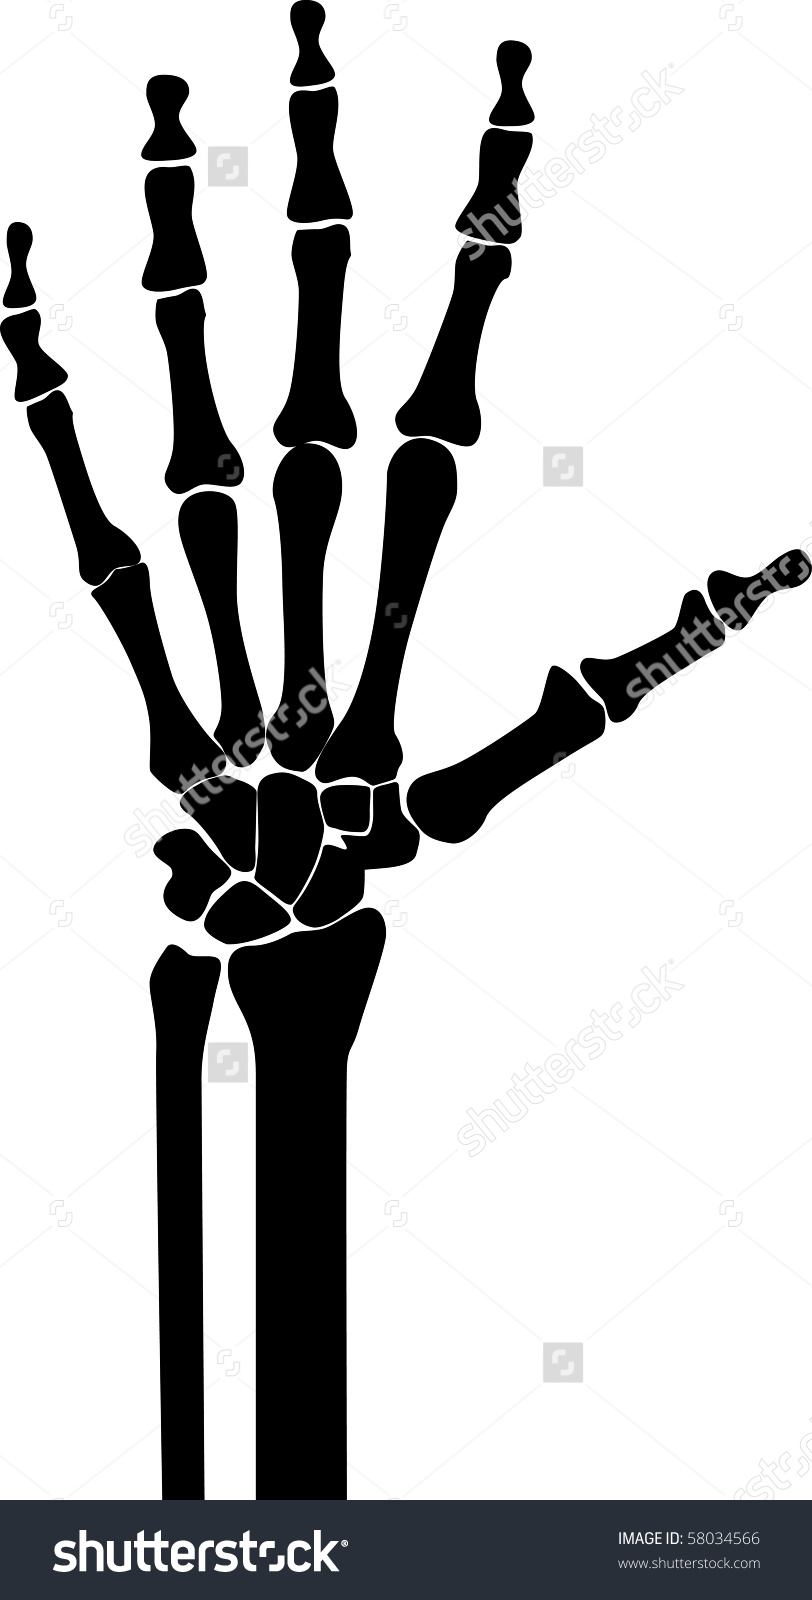 Skeleton Hand and Arm Clip Art.